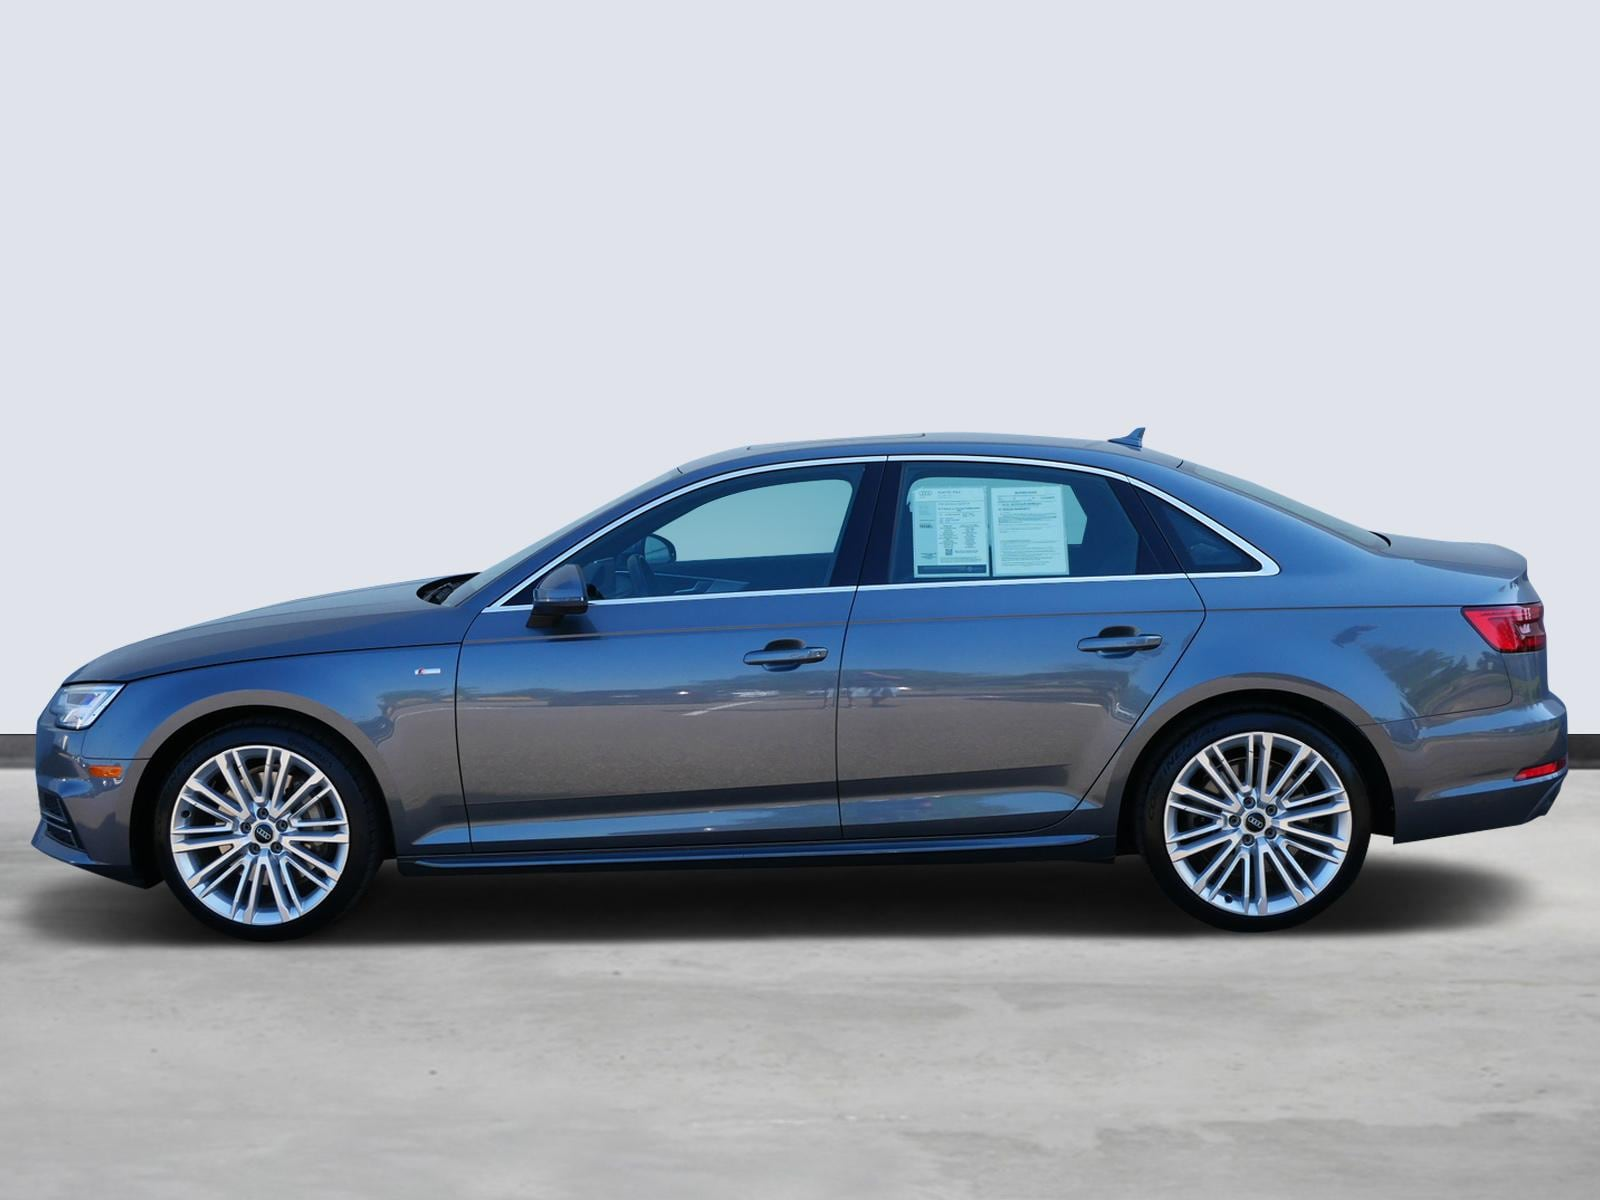 Used 2017 Audi A4 Prestige with VIN WAUFNAF44HN037365 for sale in Maplewood, Minnesota